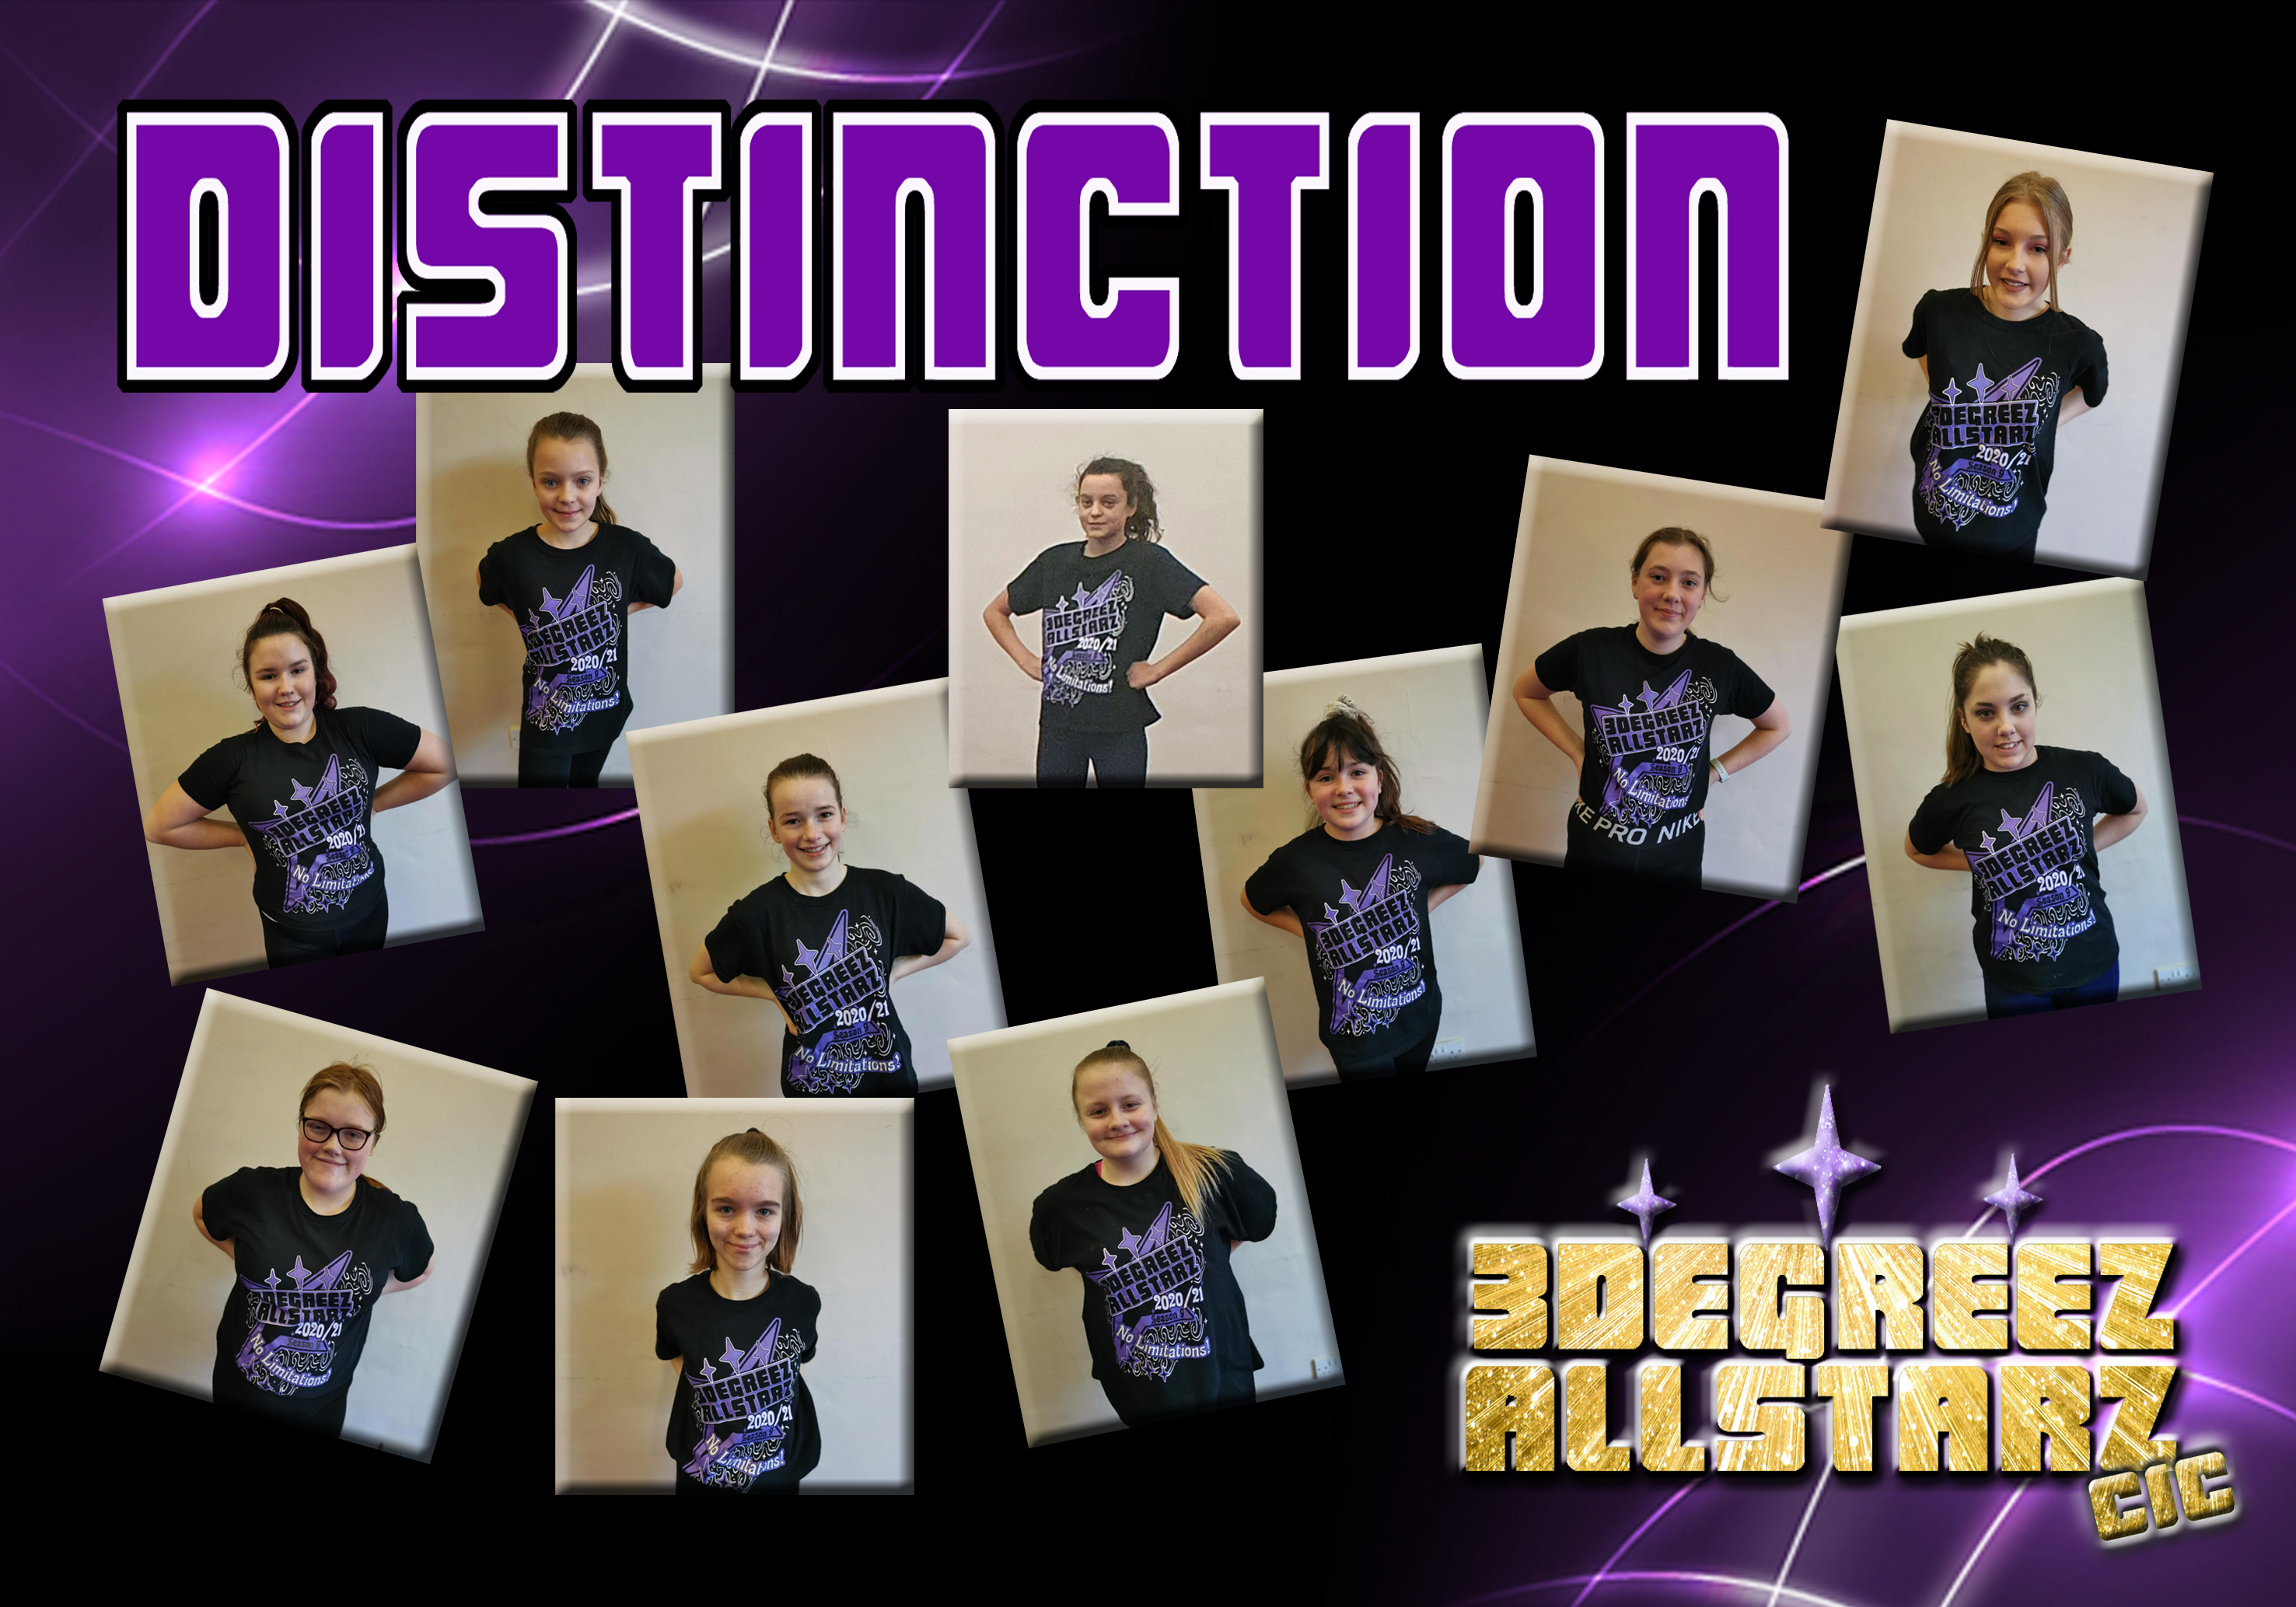 Team Distinction